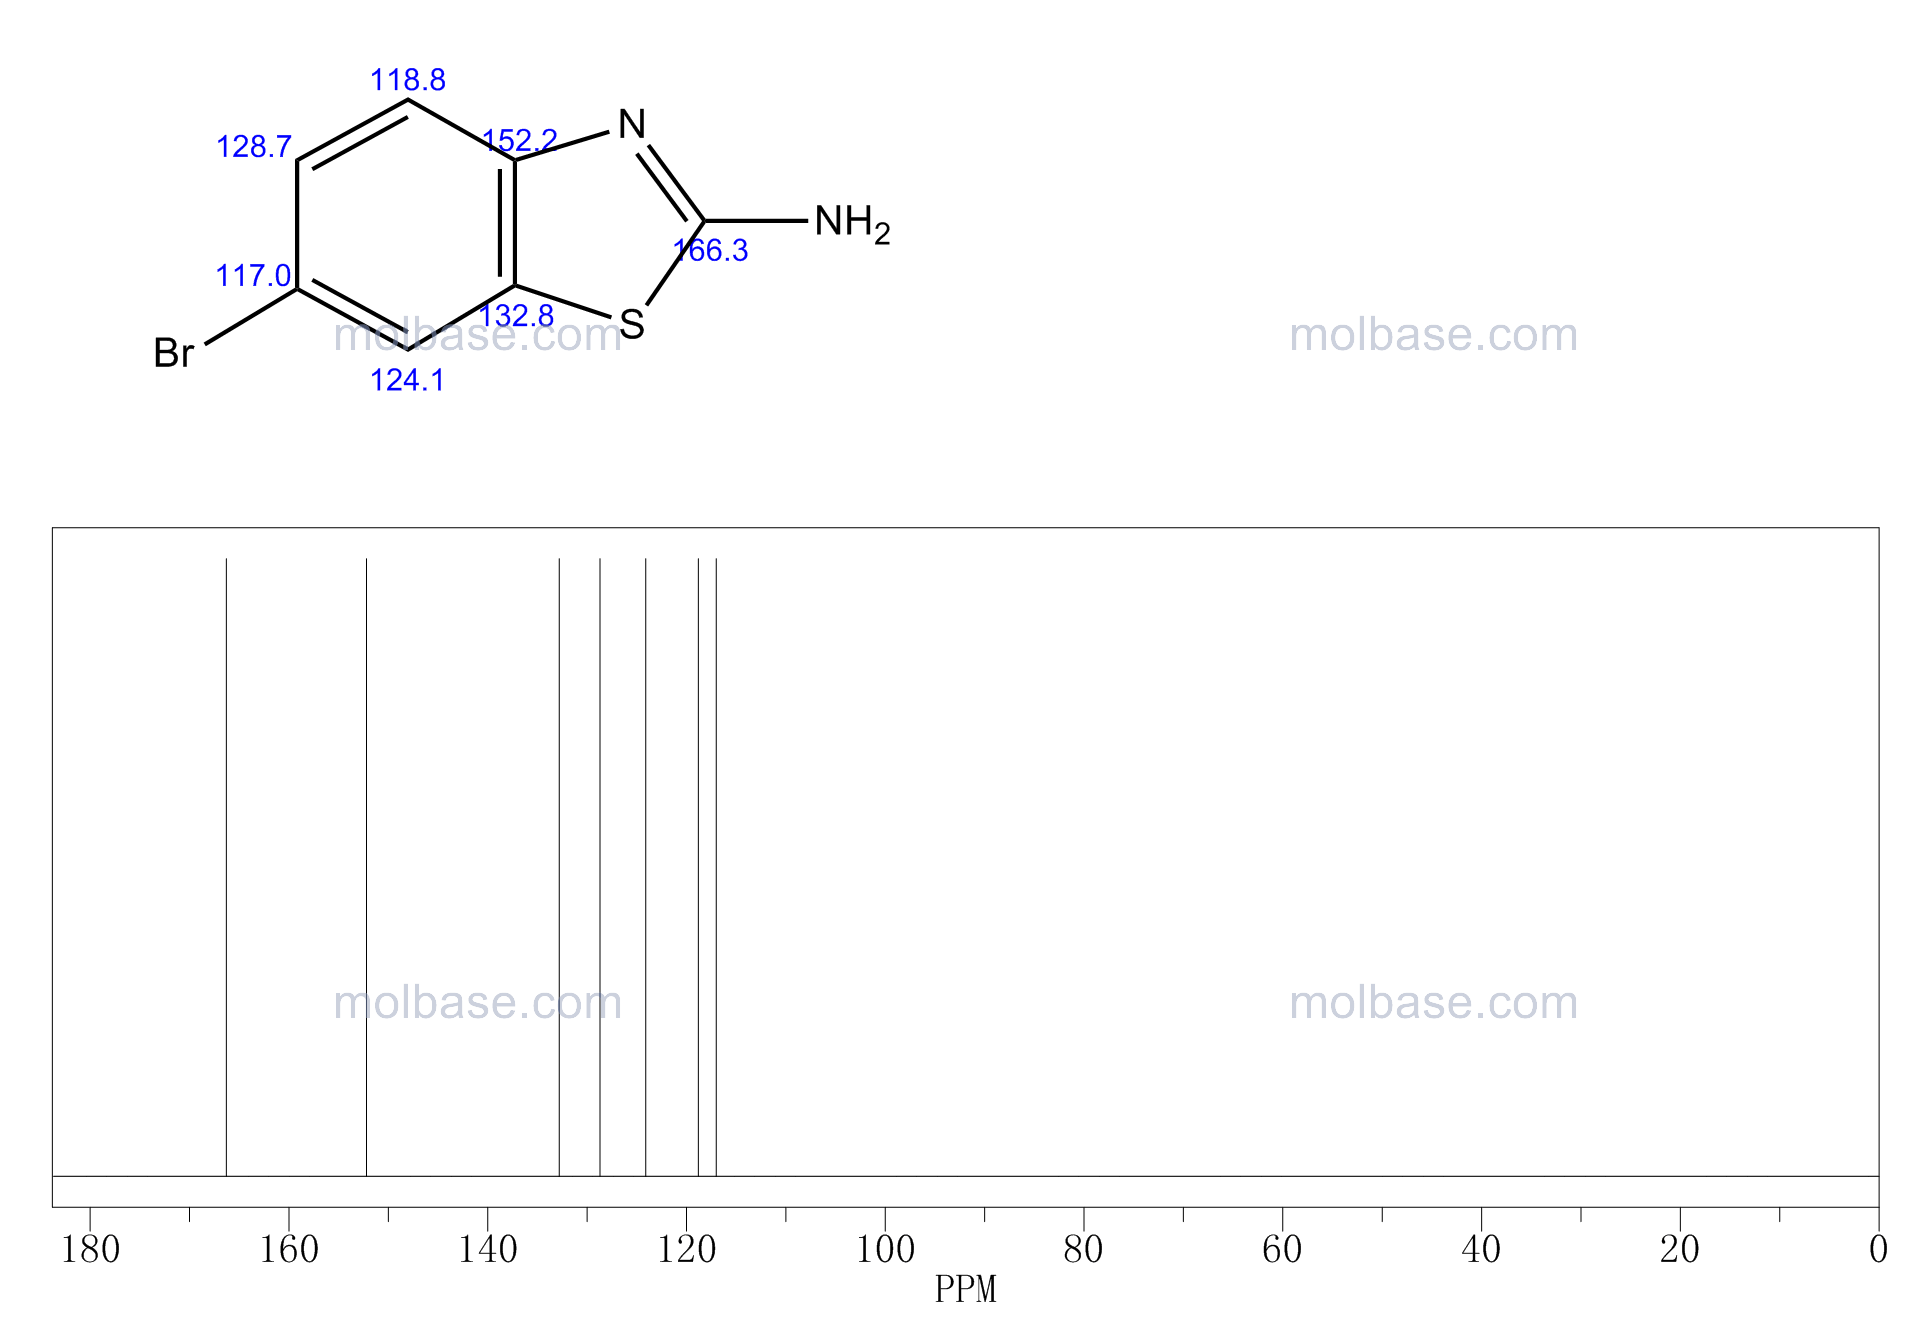 2-Amino-6-bromobenzothiazole NMR spectra analysis, Chemical CAS NO. 15864-32-1 NMR spectral analysis, 2-Amino-6-bromobenzothiazole C-NMR spectrum